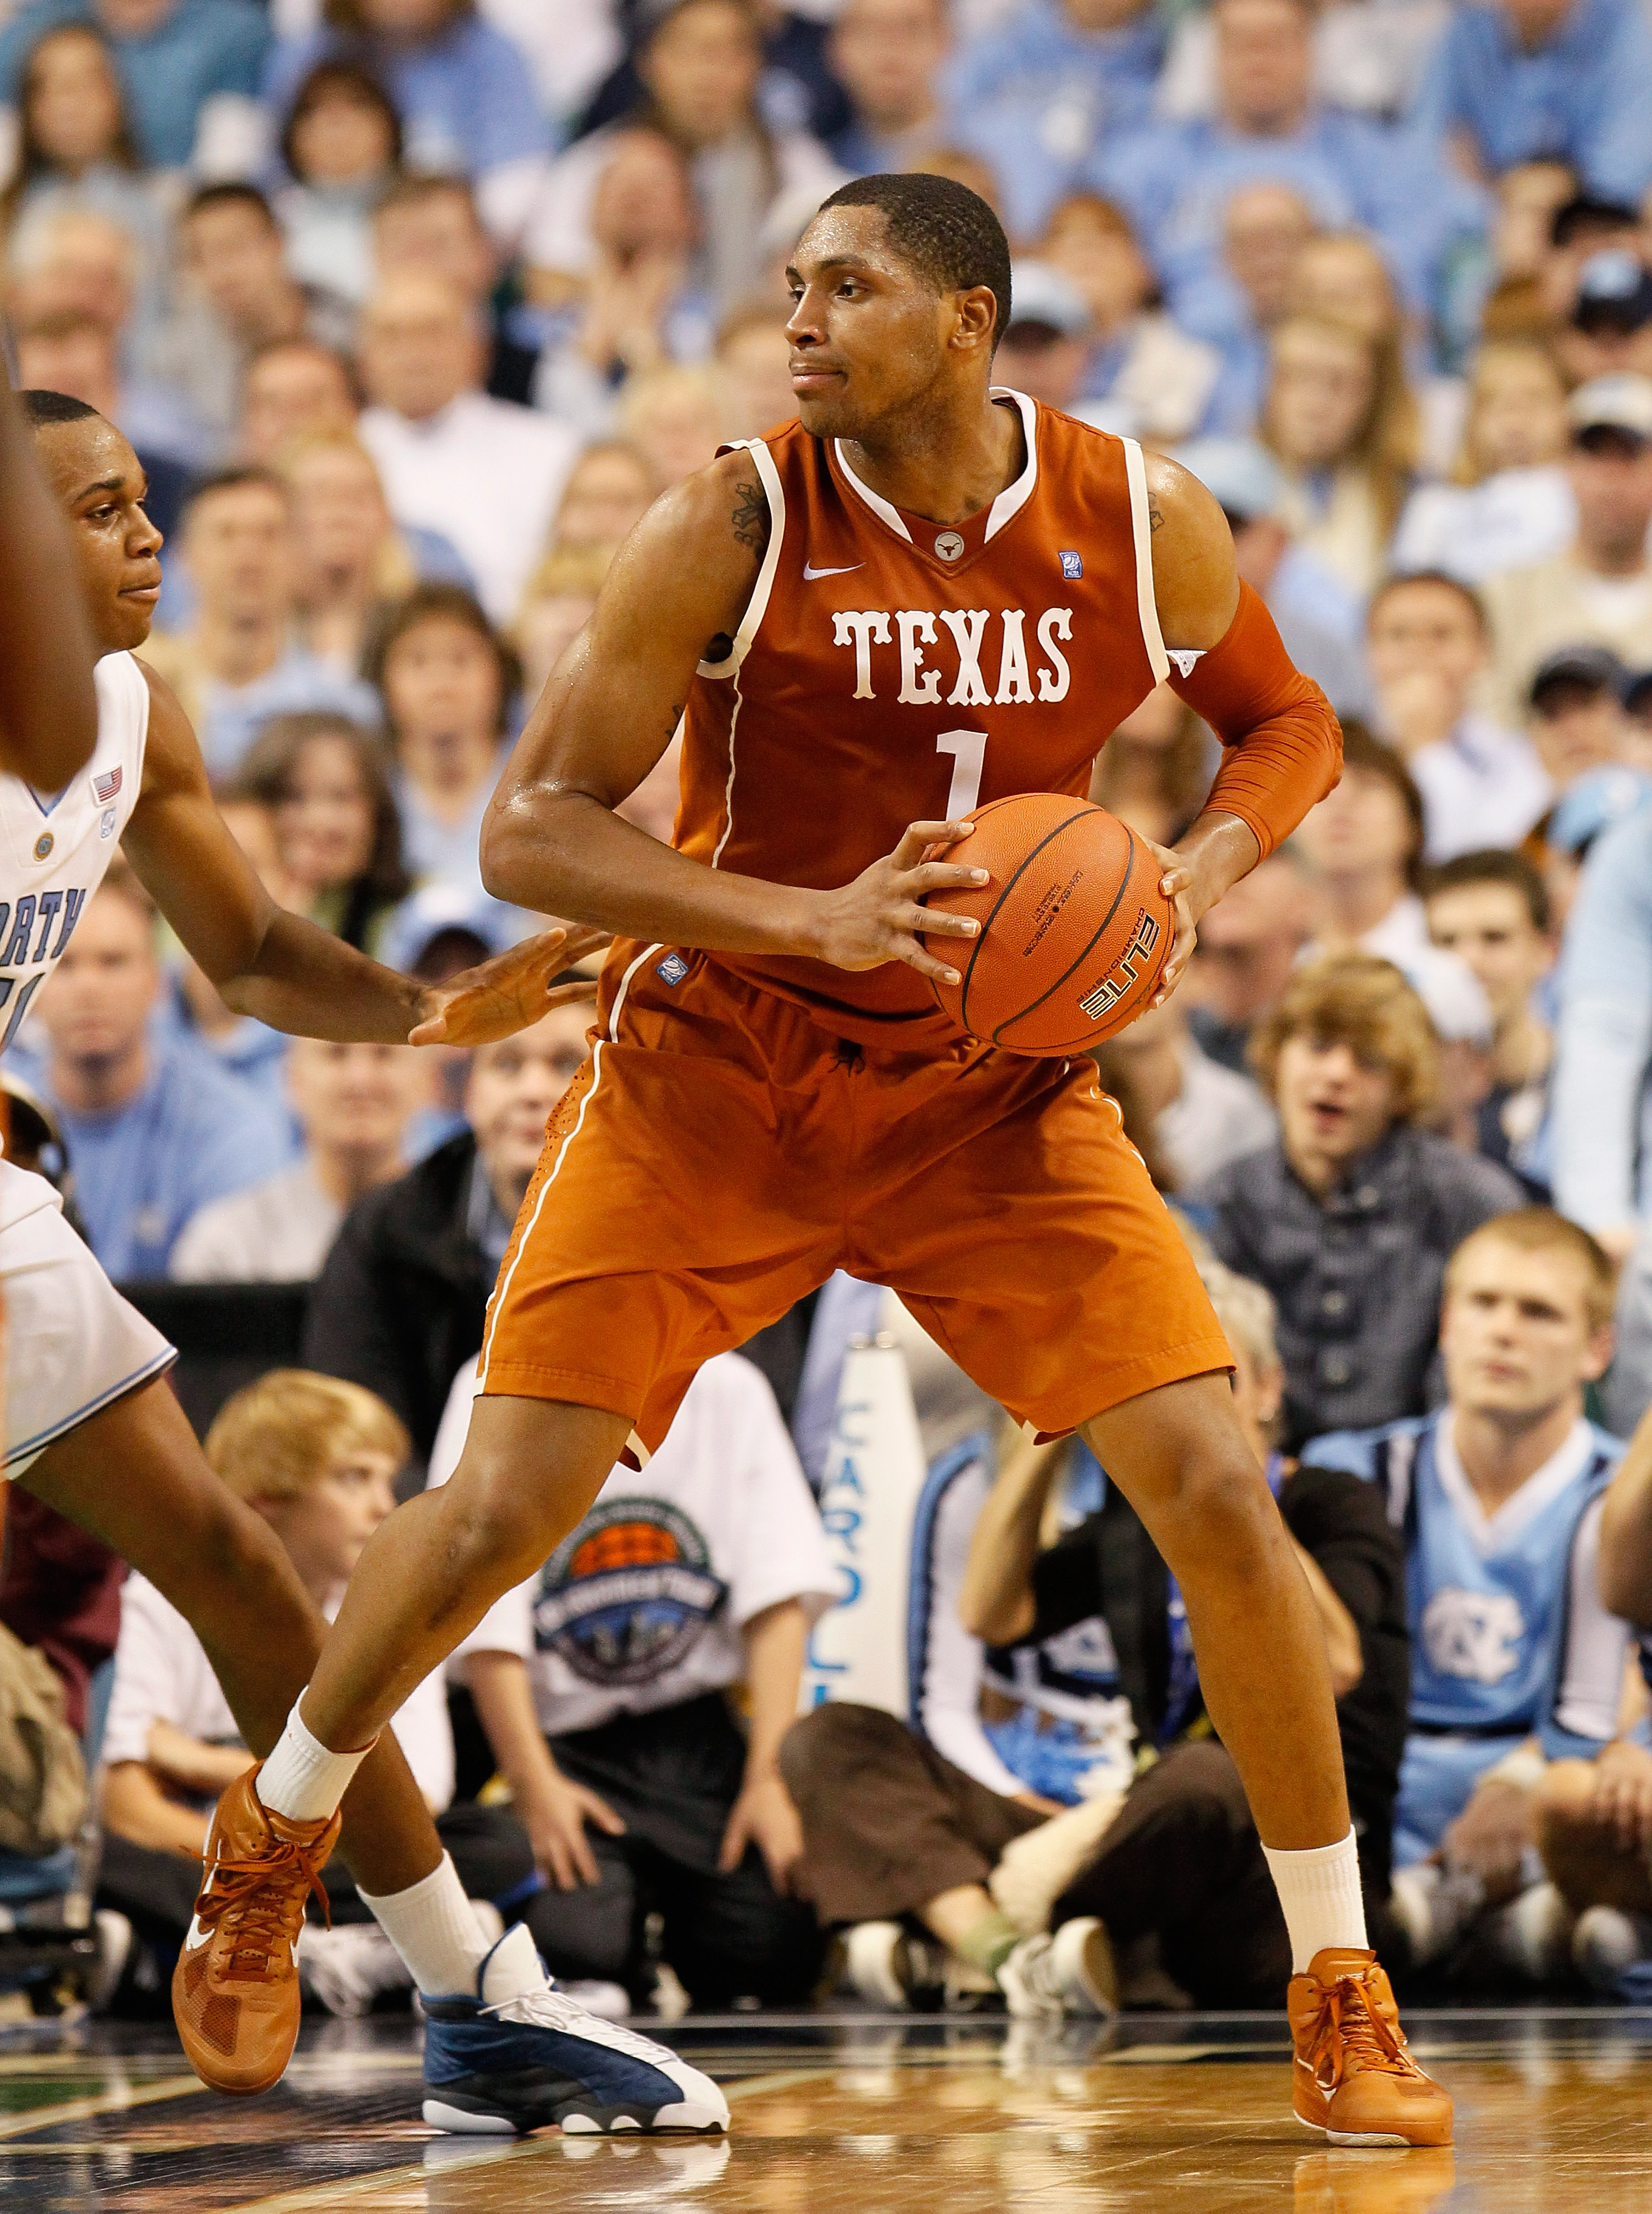 GREENSBORO, NC - DECEMBER 18:  Gary Johnson #1 of the Texas Longhorns against the North Carolina Tar Heels at Greensboro Coliseum on December 18, 2010 in Greensboro, North Carolina.  (Photo by Kevin C. Cox/Getty Images)